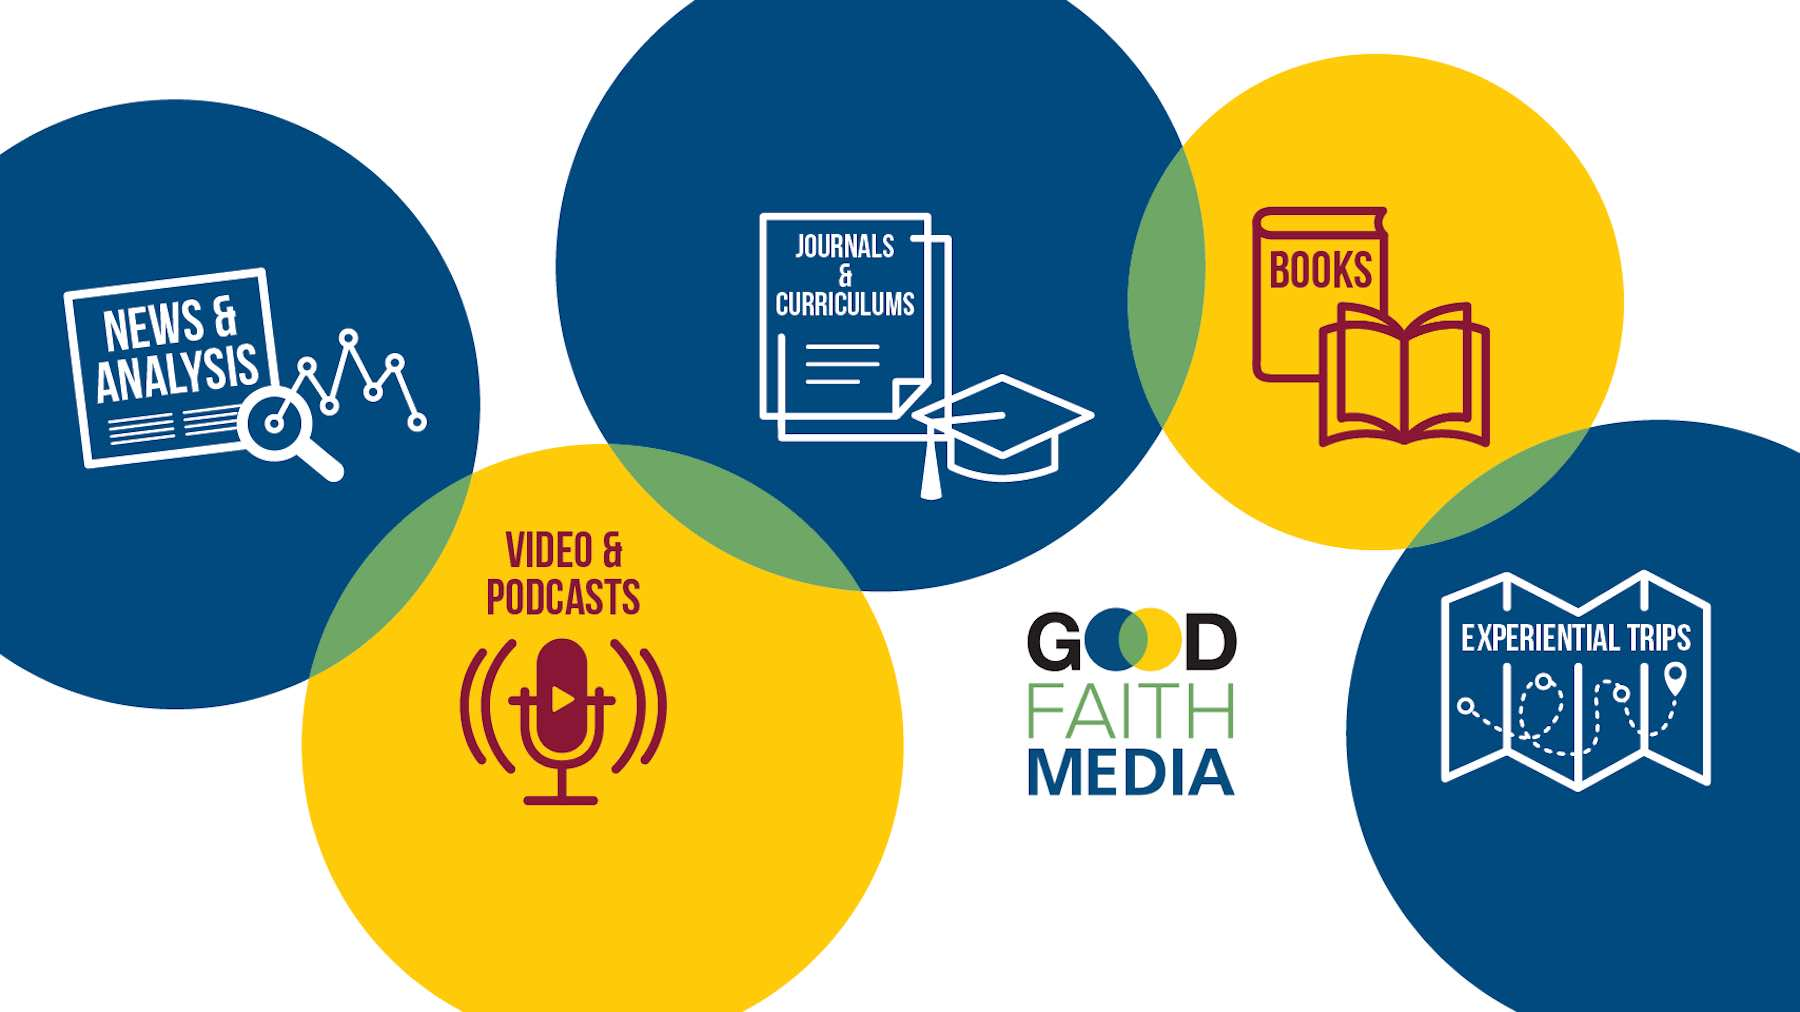 FAQ: Your Good Faith Media Questions Answered